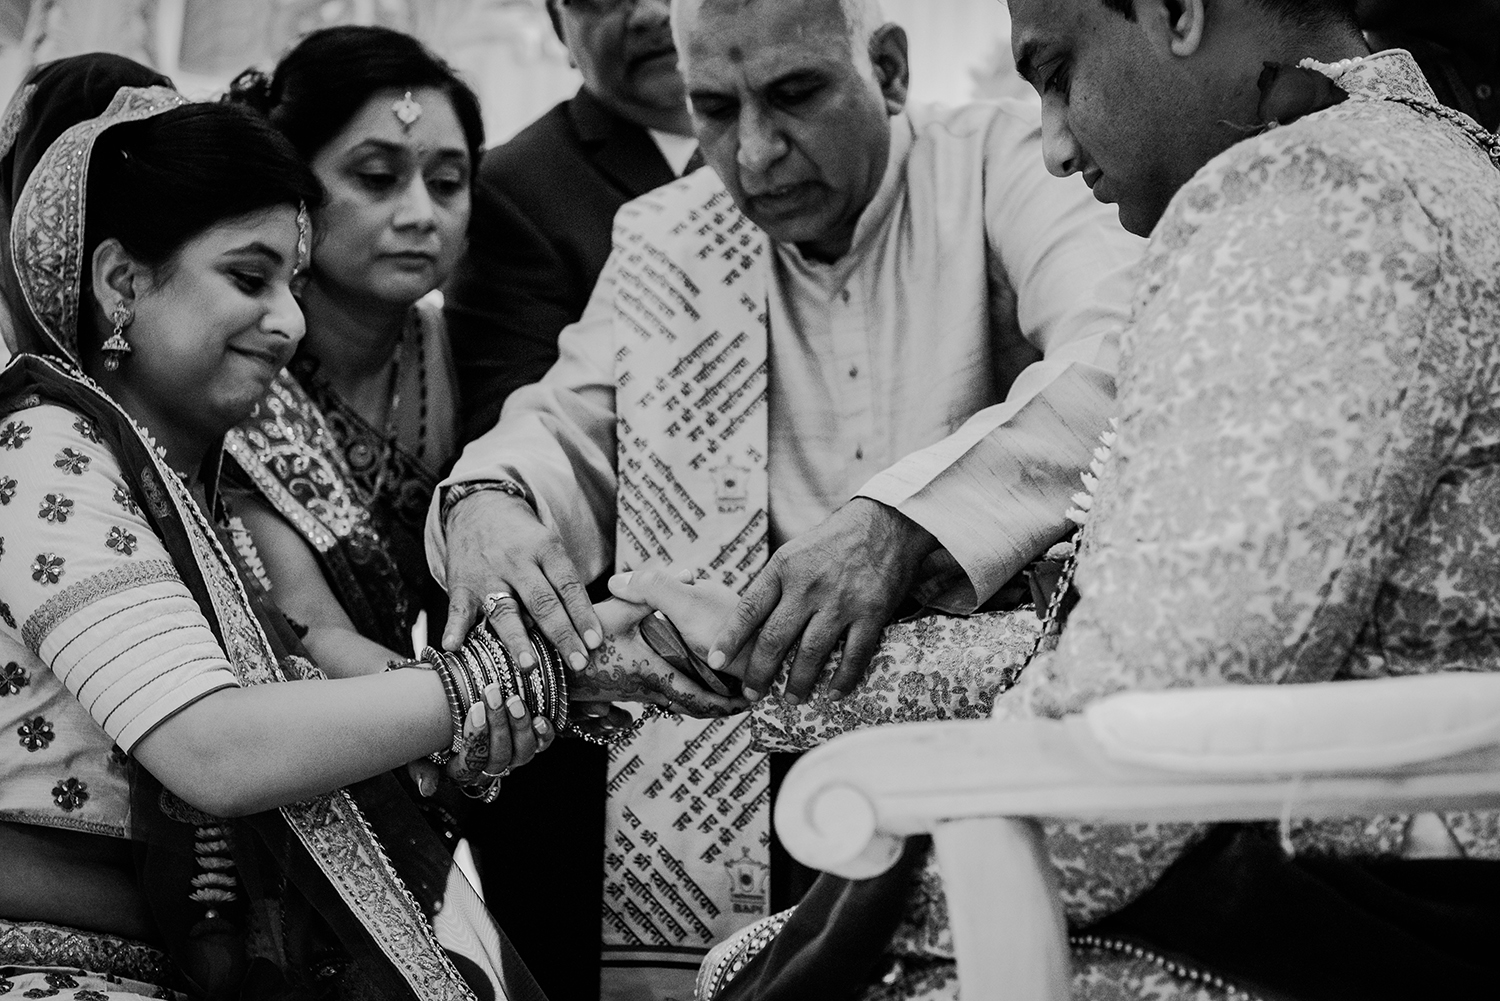 bw photo of the priest joining the bride and grooms hands